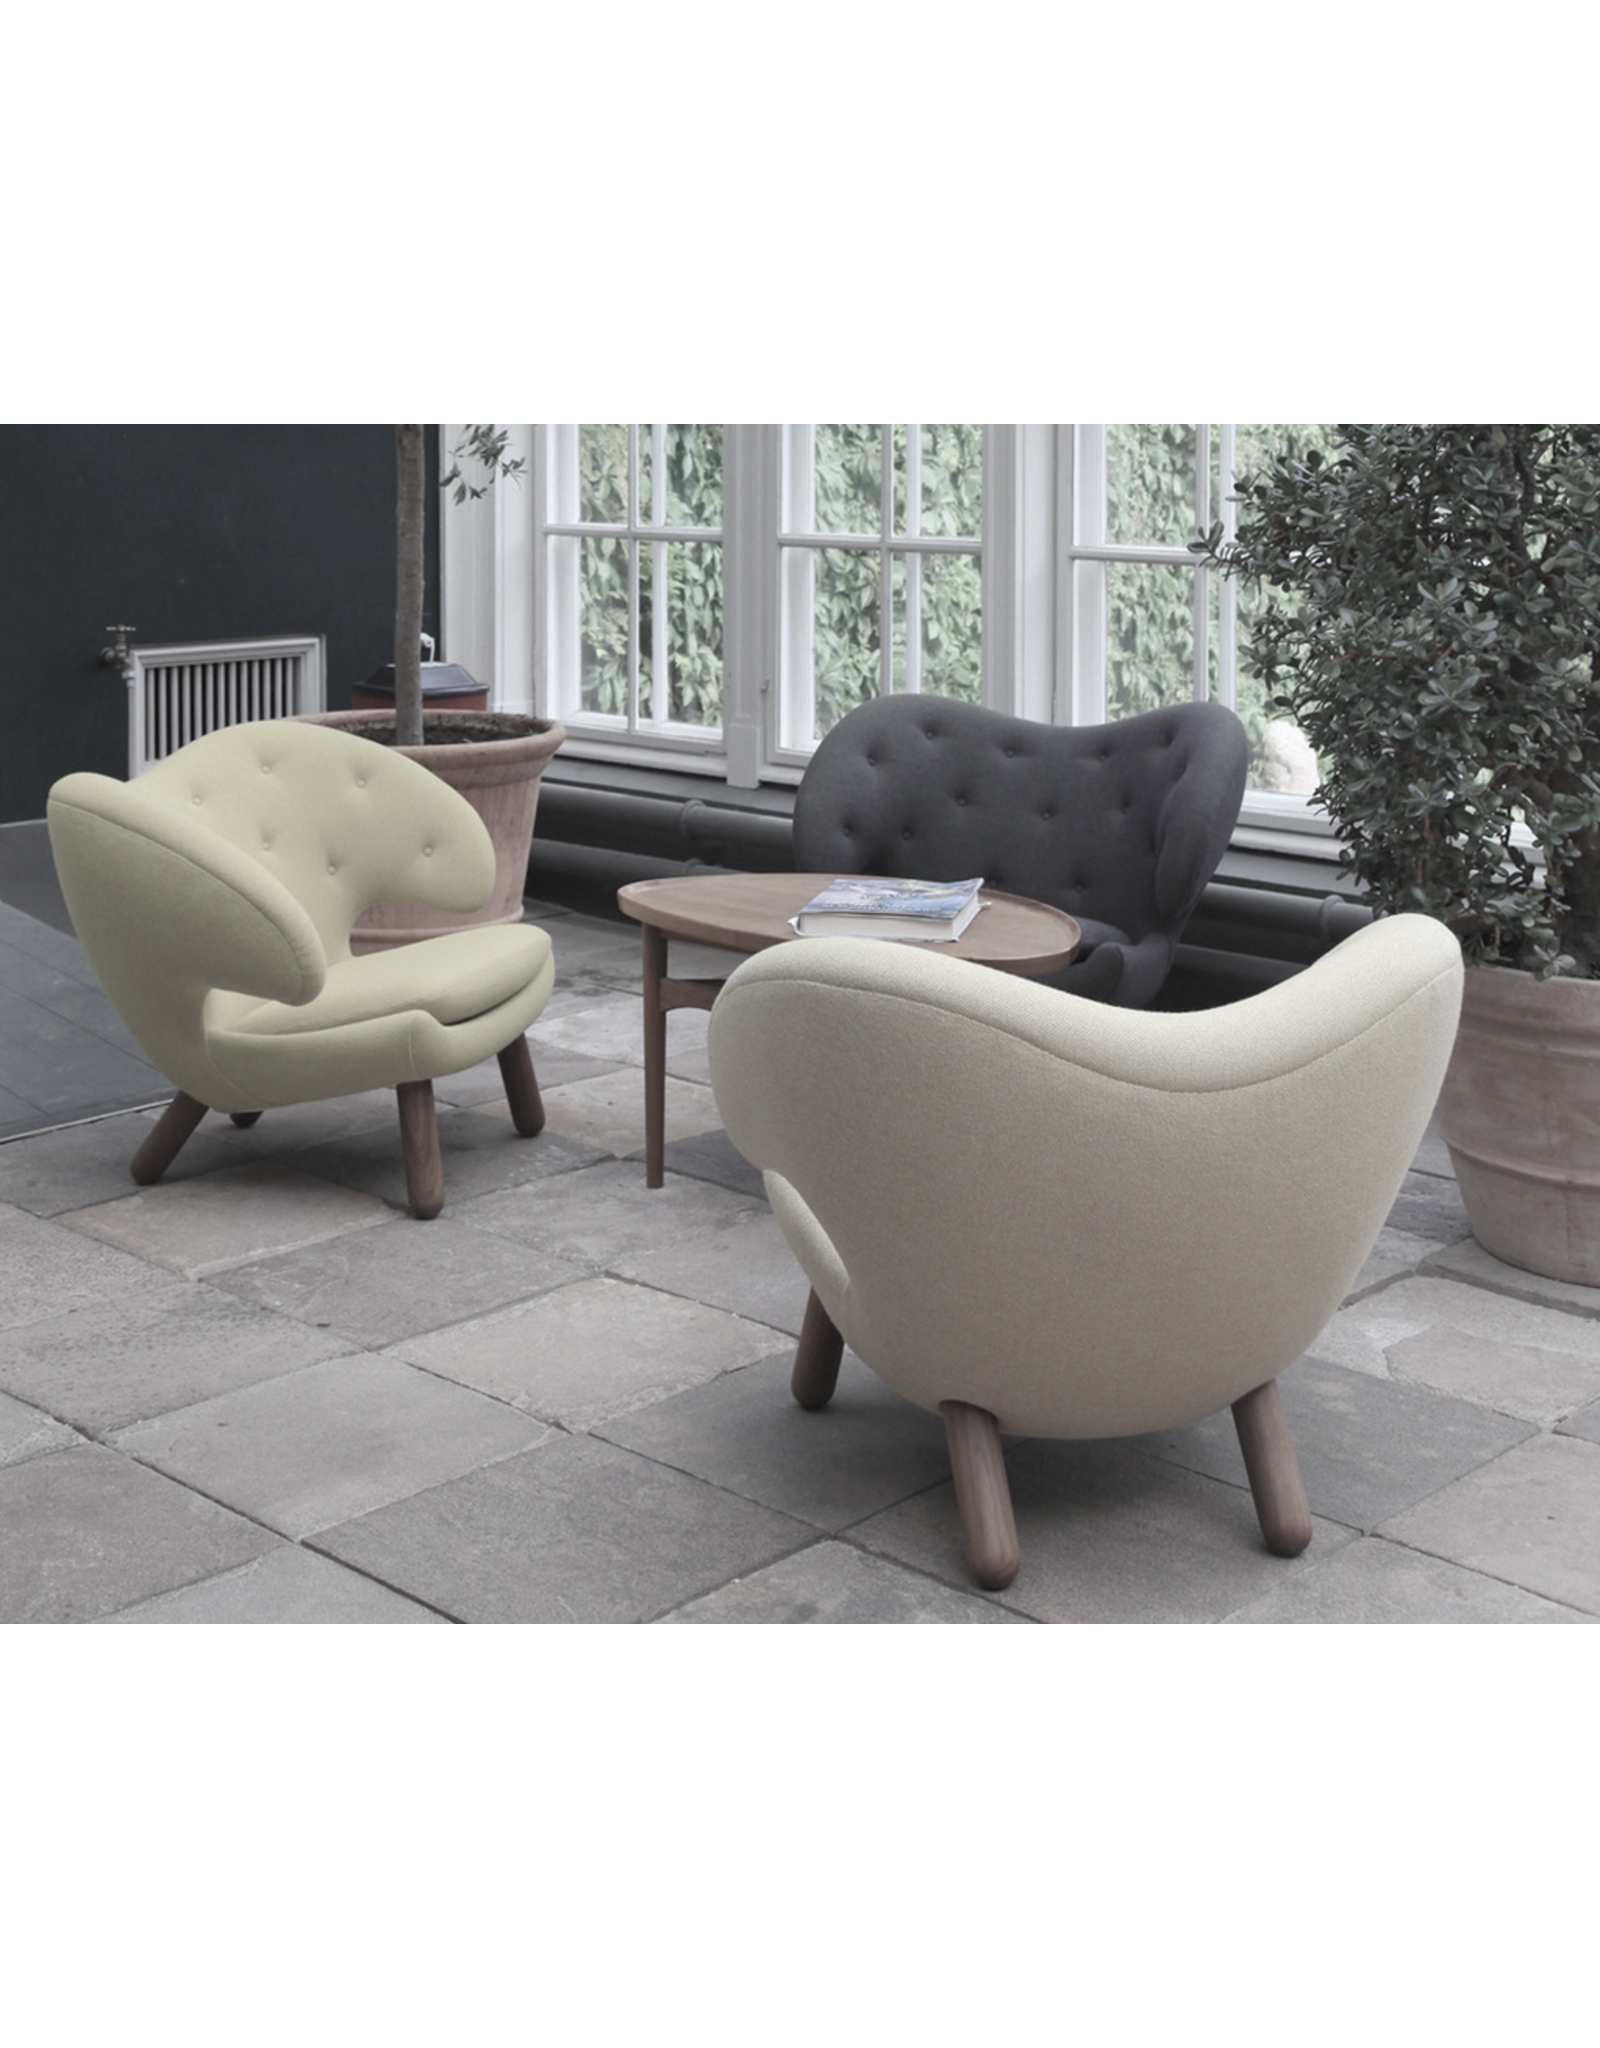 ONECOLLECTION THE PELICAN CHAIR